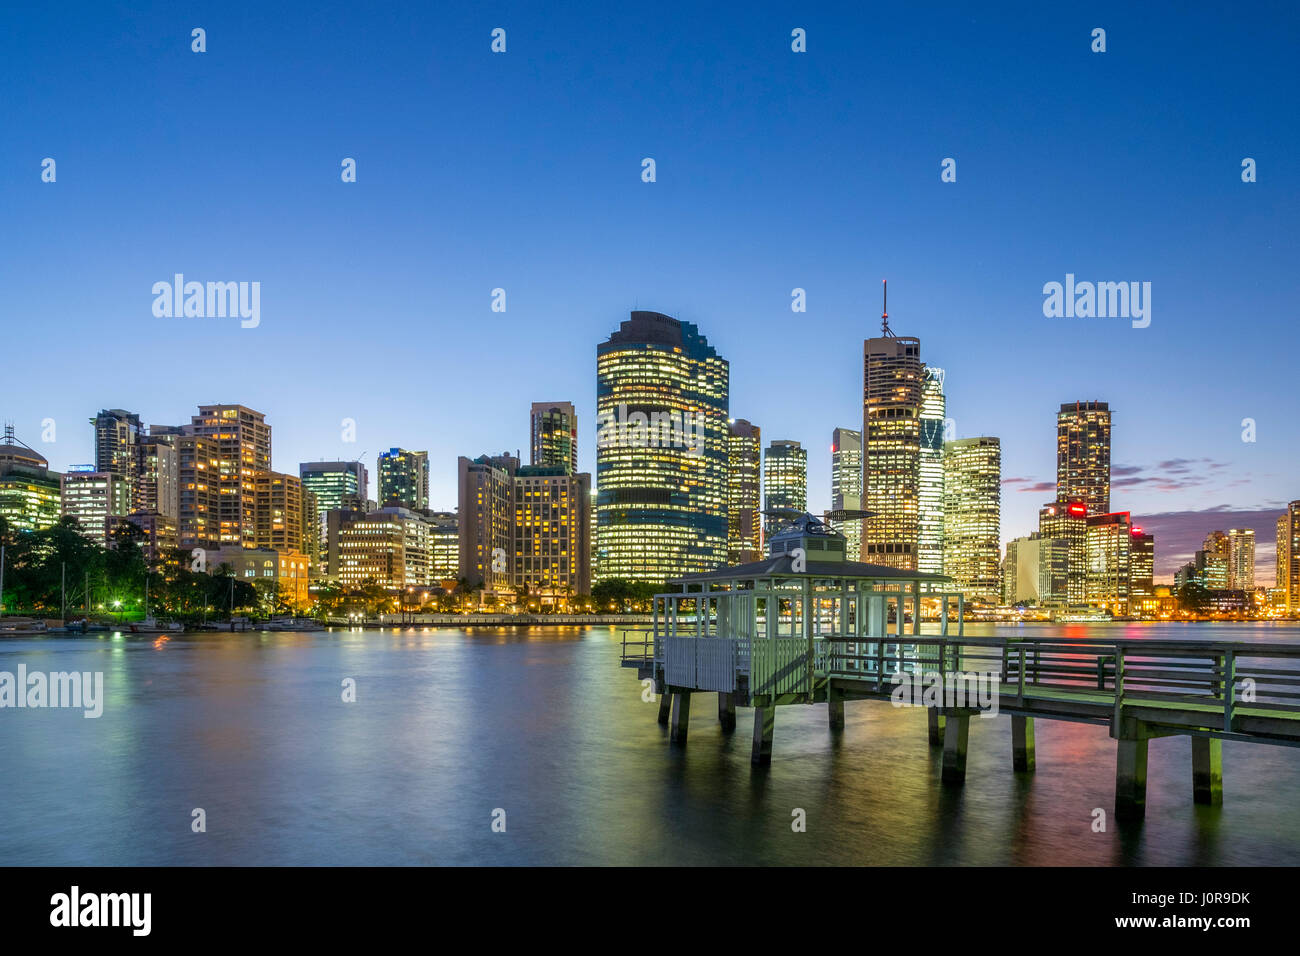 Night view of skyline of central business district of Brisbane in Queensland Australia - Stock Image